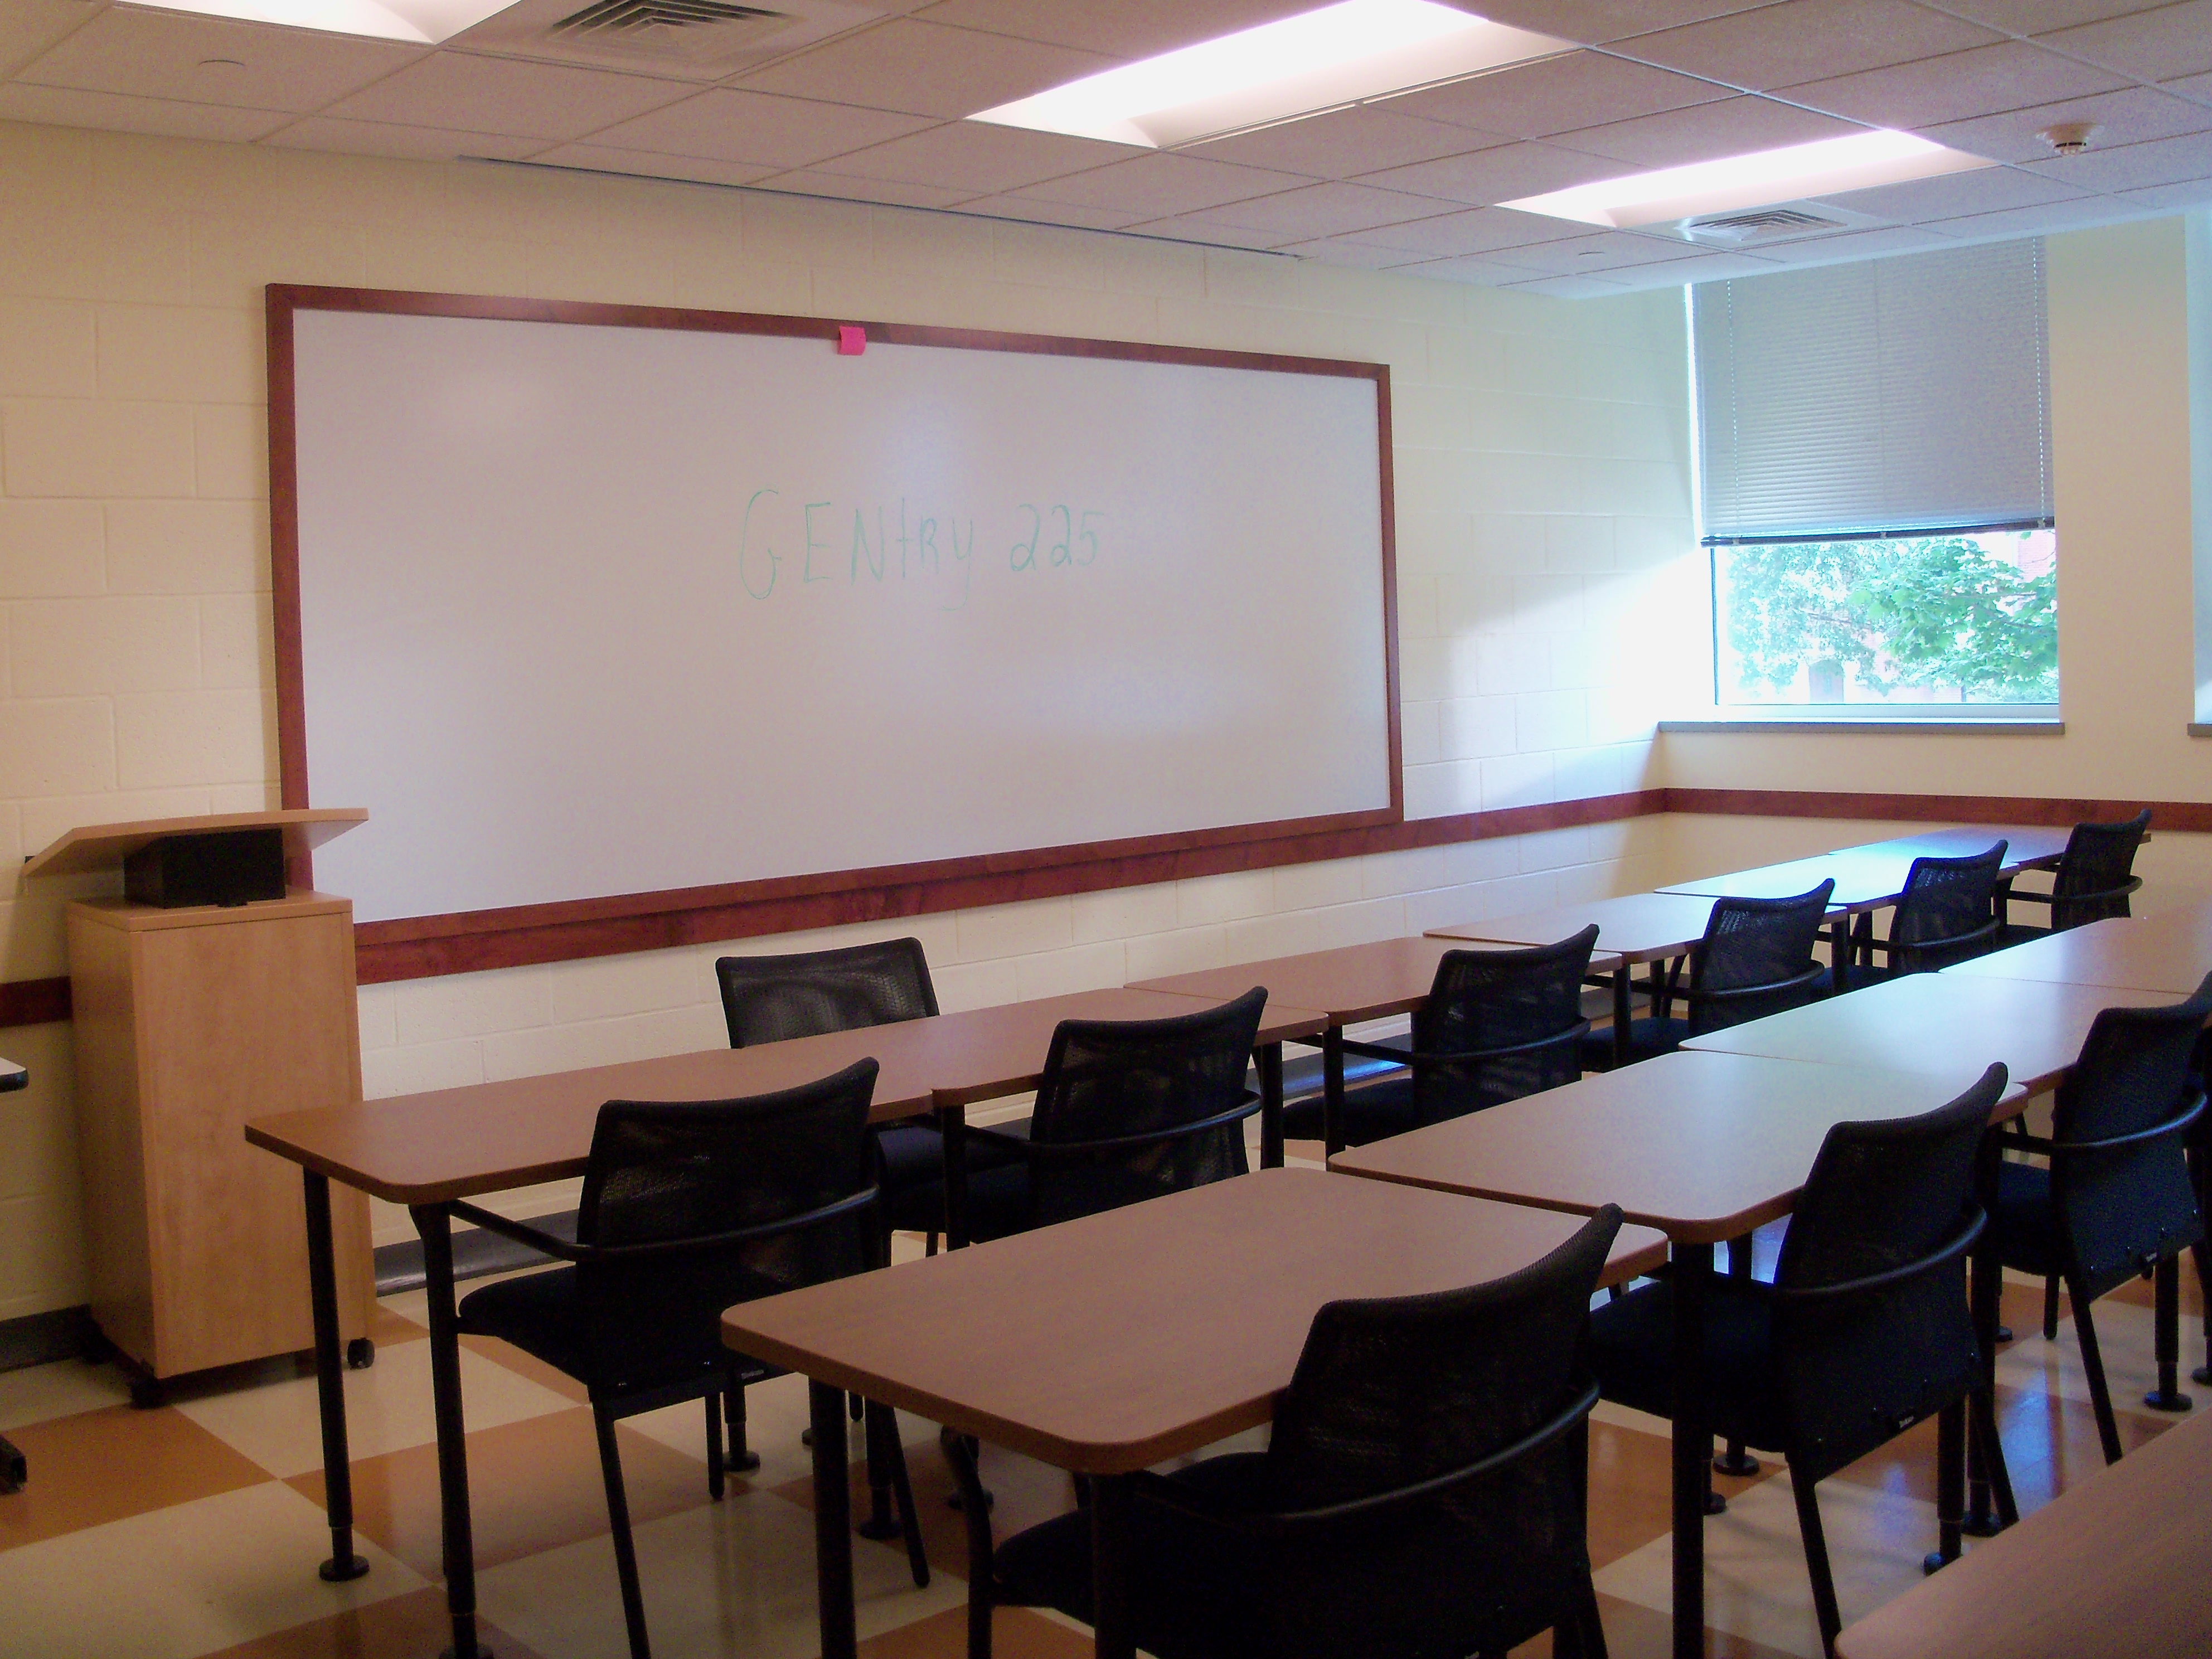 Gentry 225  UConn Classrooms Storrs campus